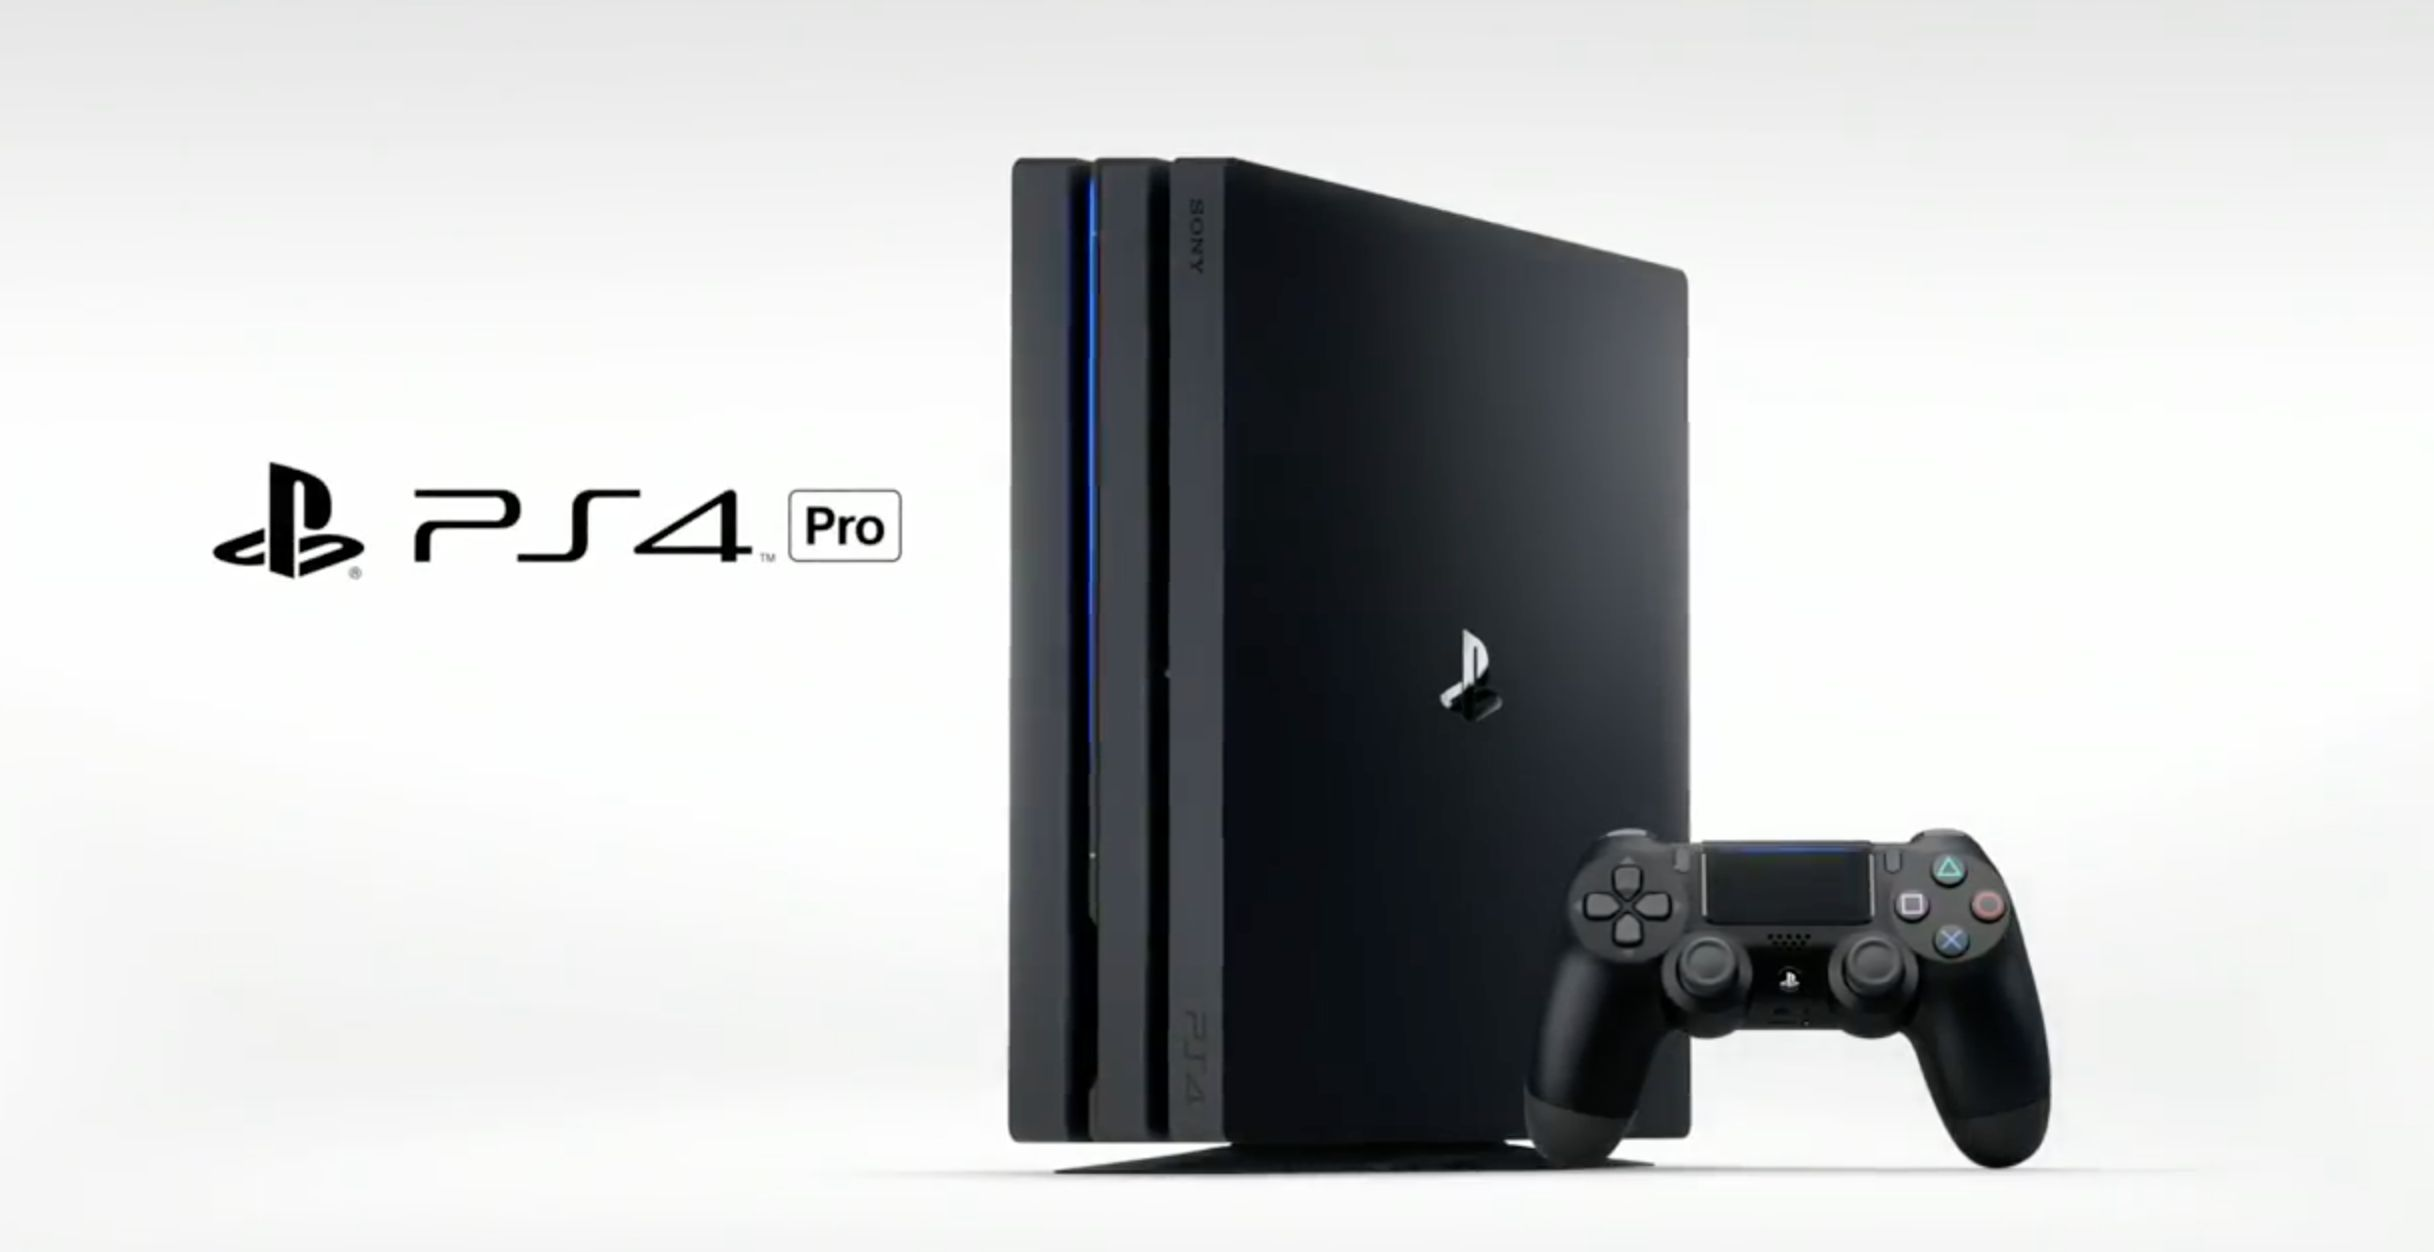 Sony PlayStation 4 Pro - A 4K Console Designed For Hardcore